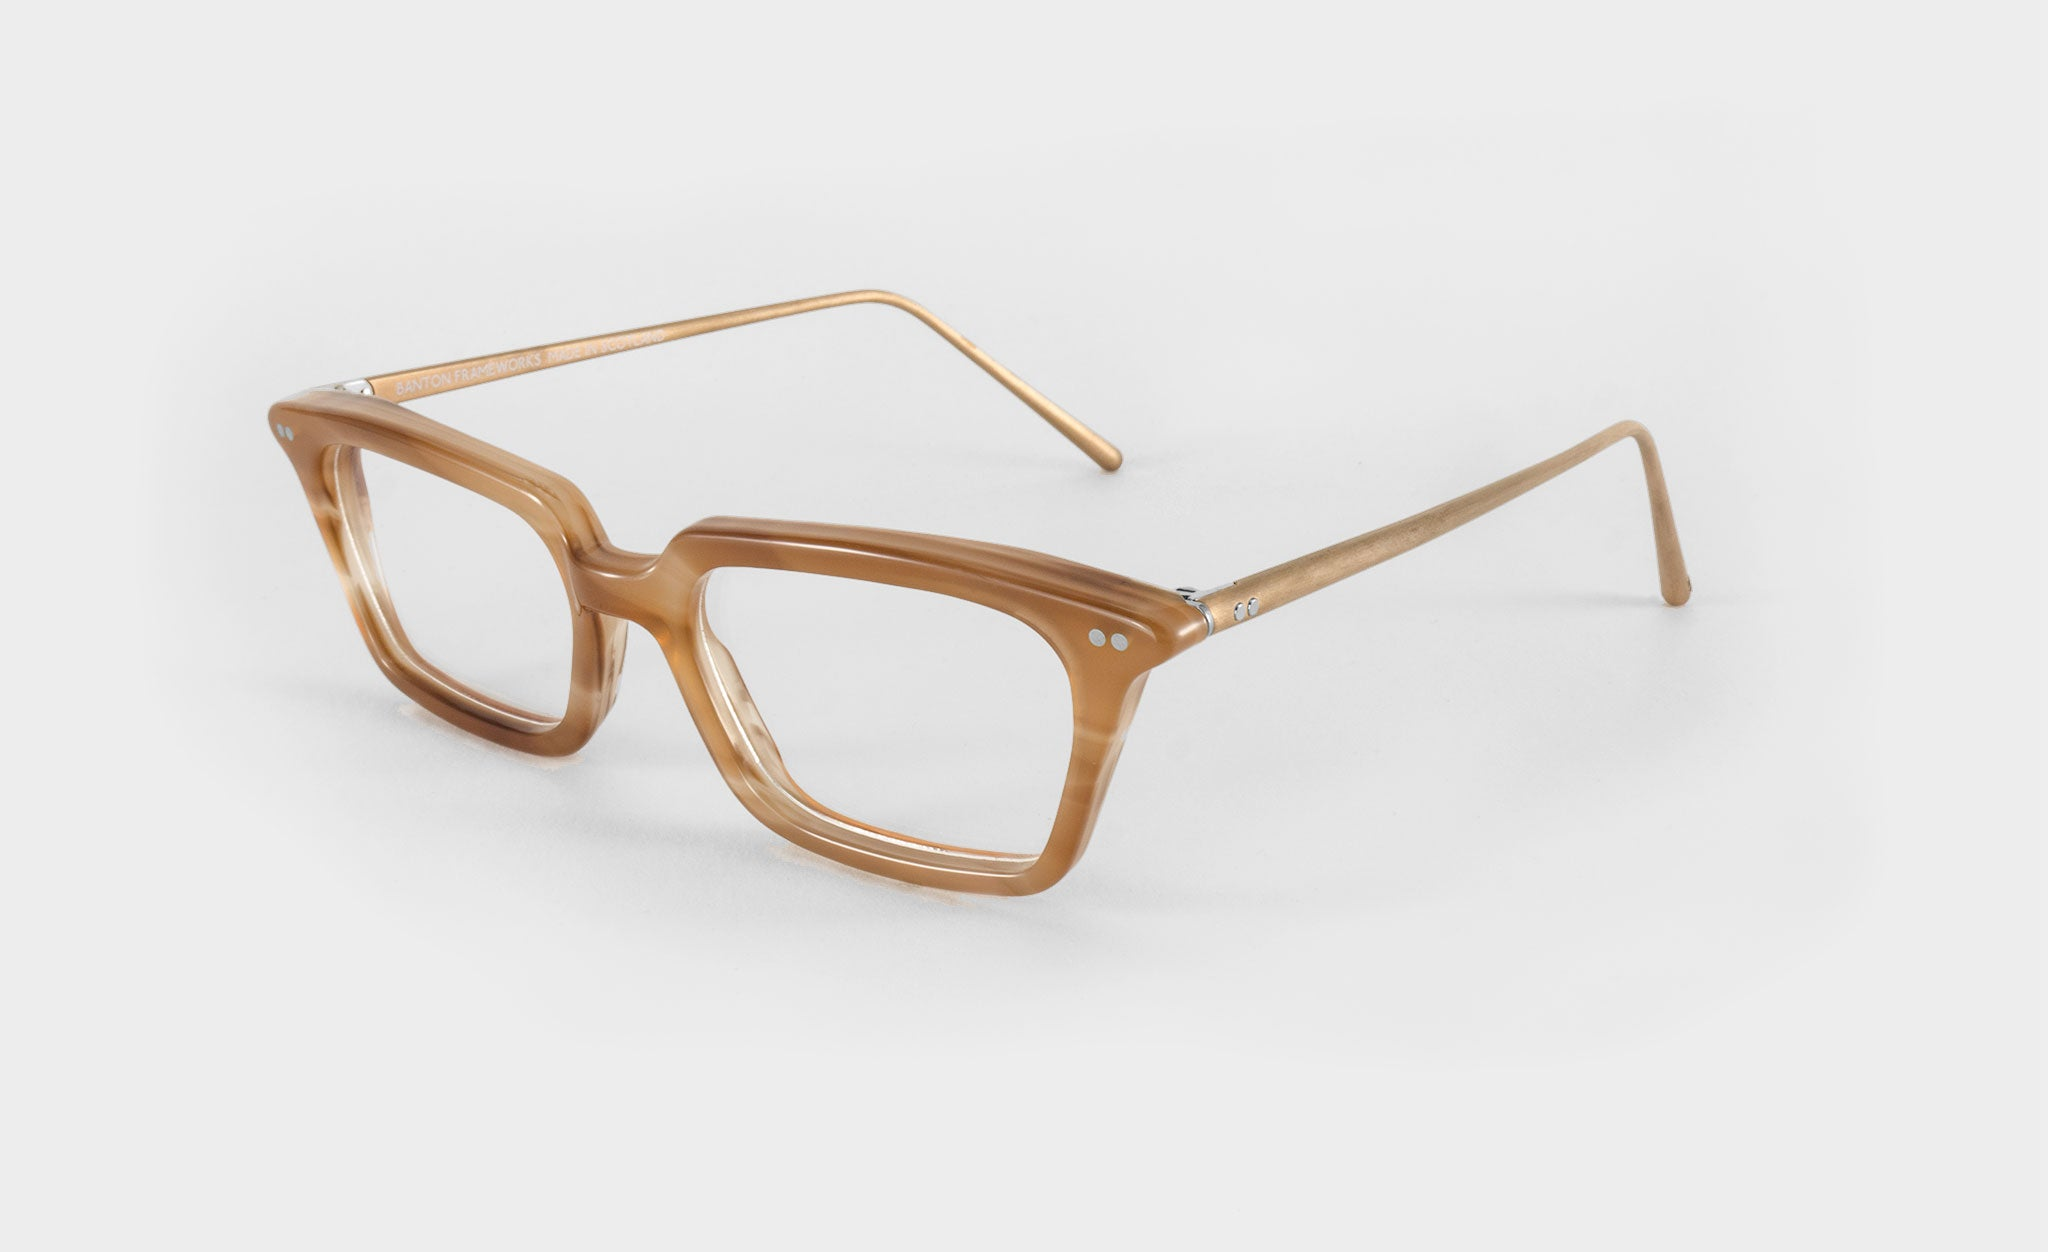 Womens-glasses-h-rd-side-view